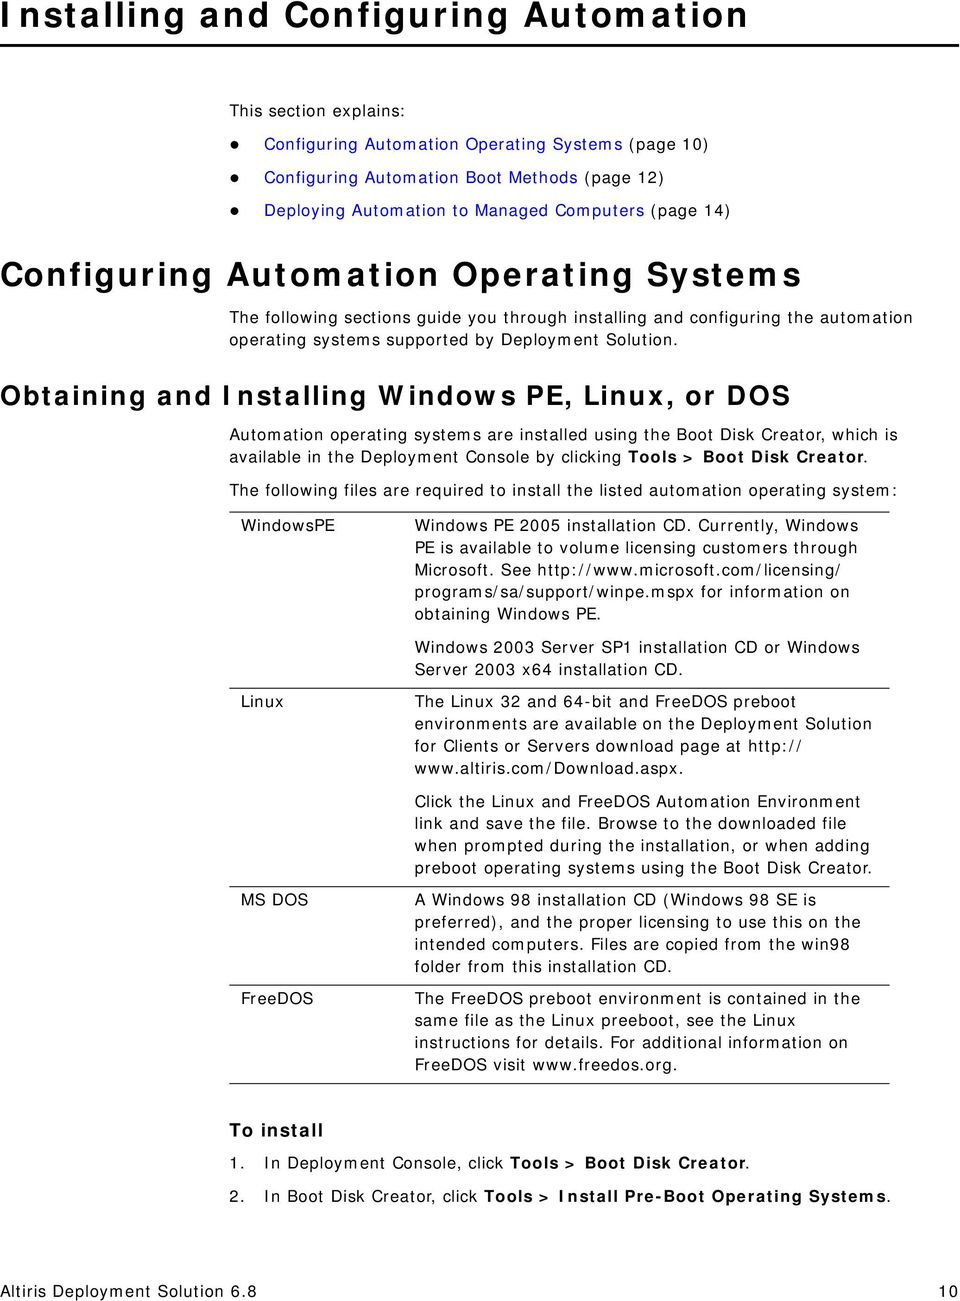 Obtaining and Installing Windows PE, Linux, or DOS Automation operating systems are installed using the Boot Disk Creator, which is available in the Deployment Console by clicking Tools > Boot Disk